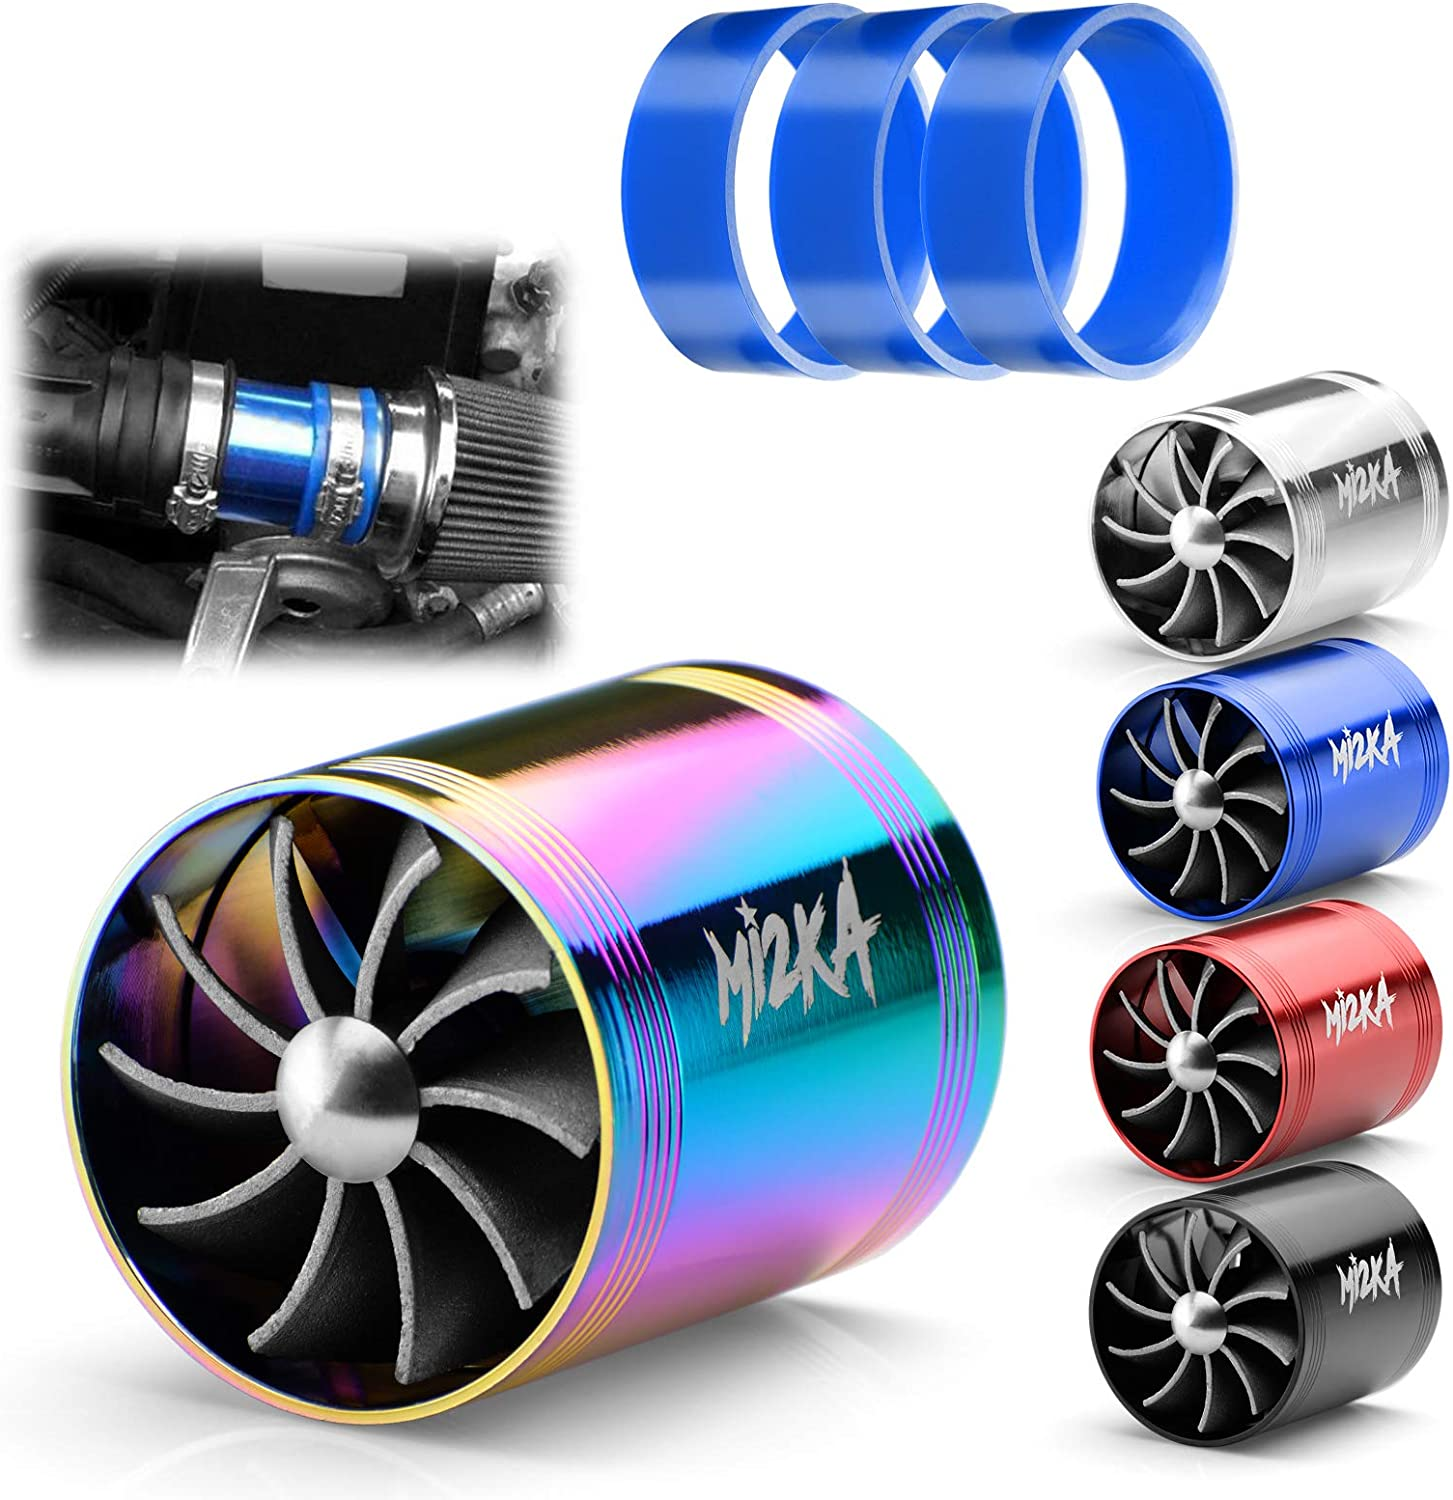 BESPORTBLE Double Turbine Turbo Charger Air Intake Fuel Gas Saver F1 Z Turbo Car Modification Accessories